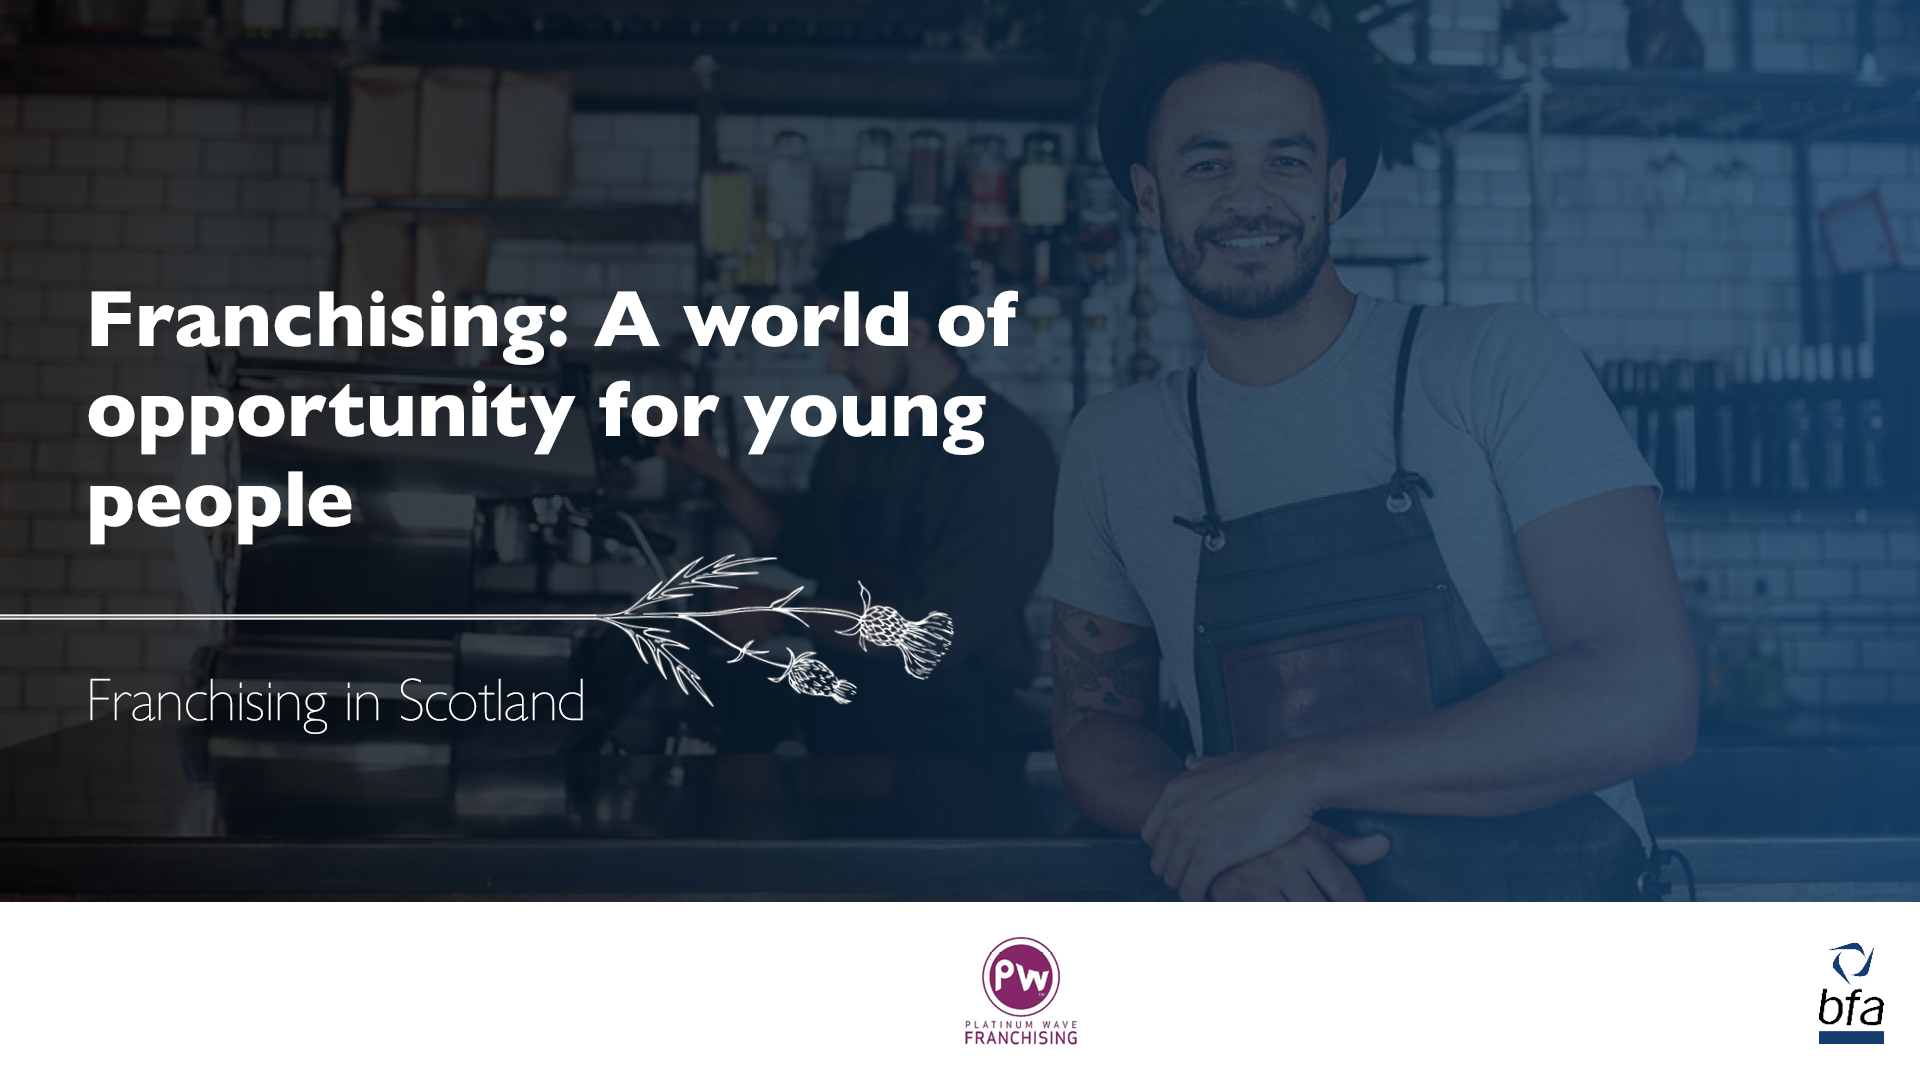 Franchising is a world of opportunity for young people